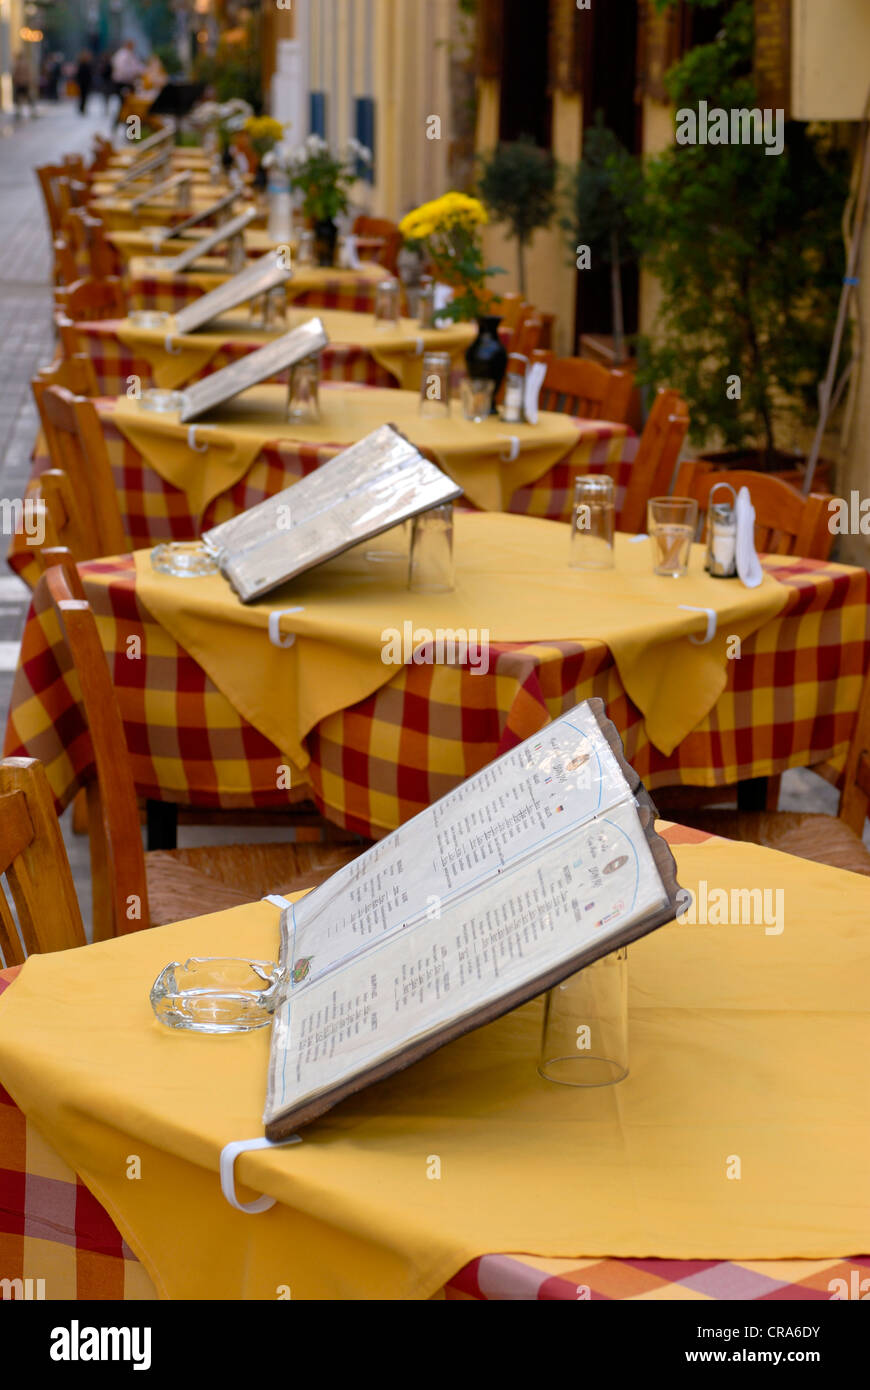 Tables with menus in a row, stree restaurant in Nafplion, Peloponnese, Greece, Europe - Stock Image